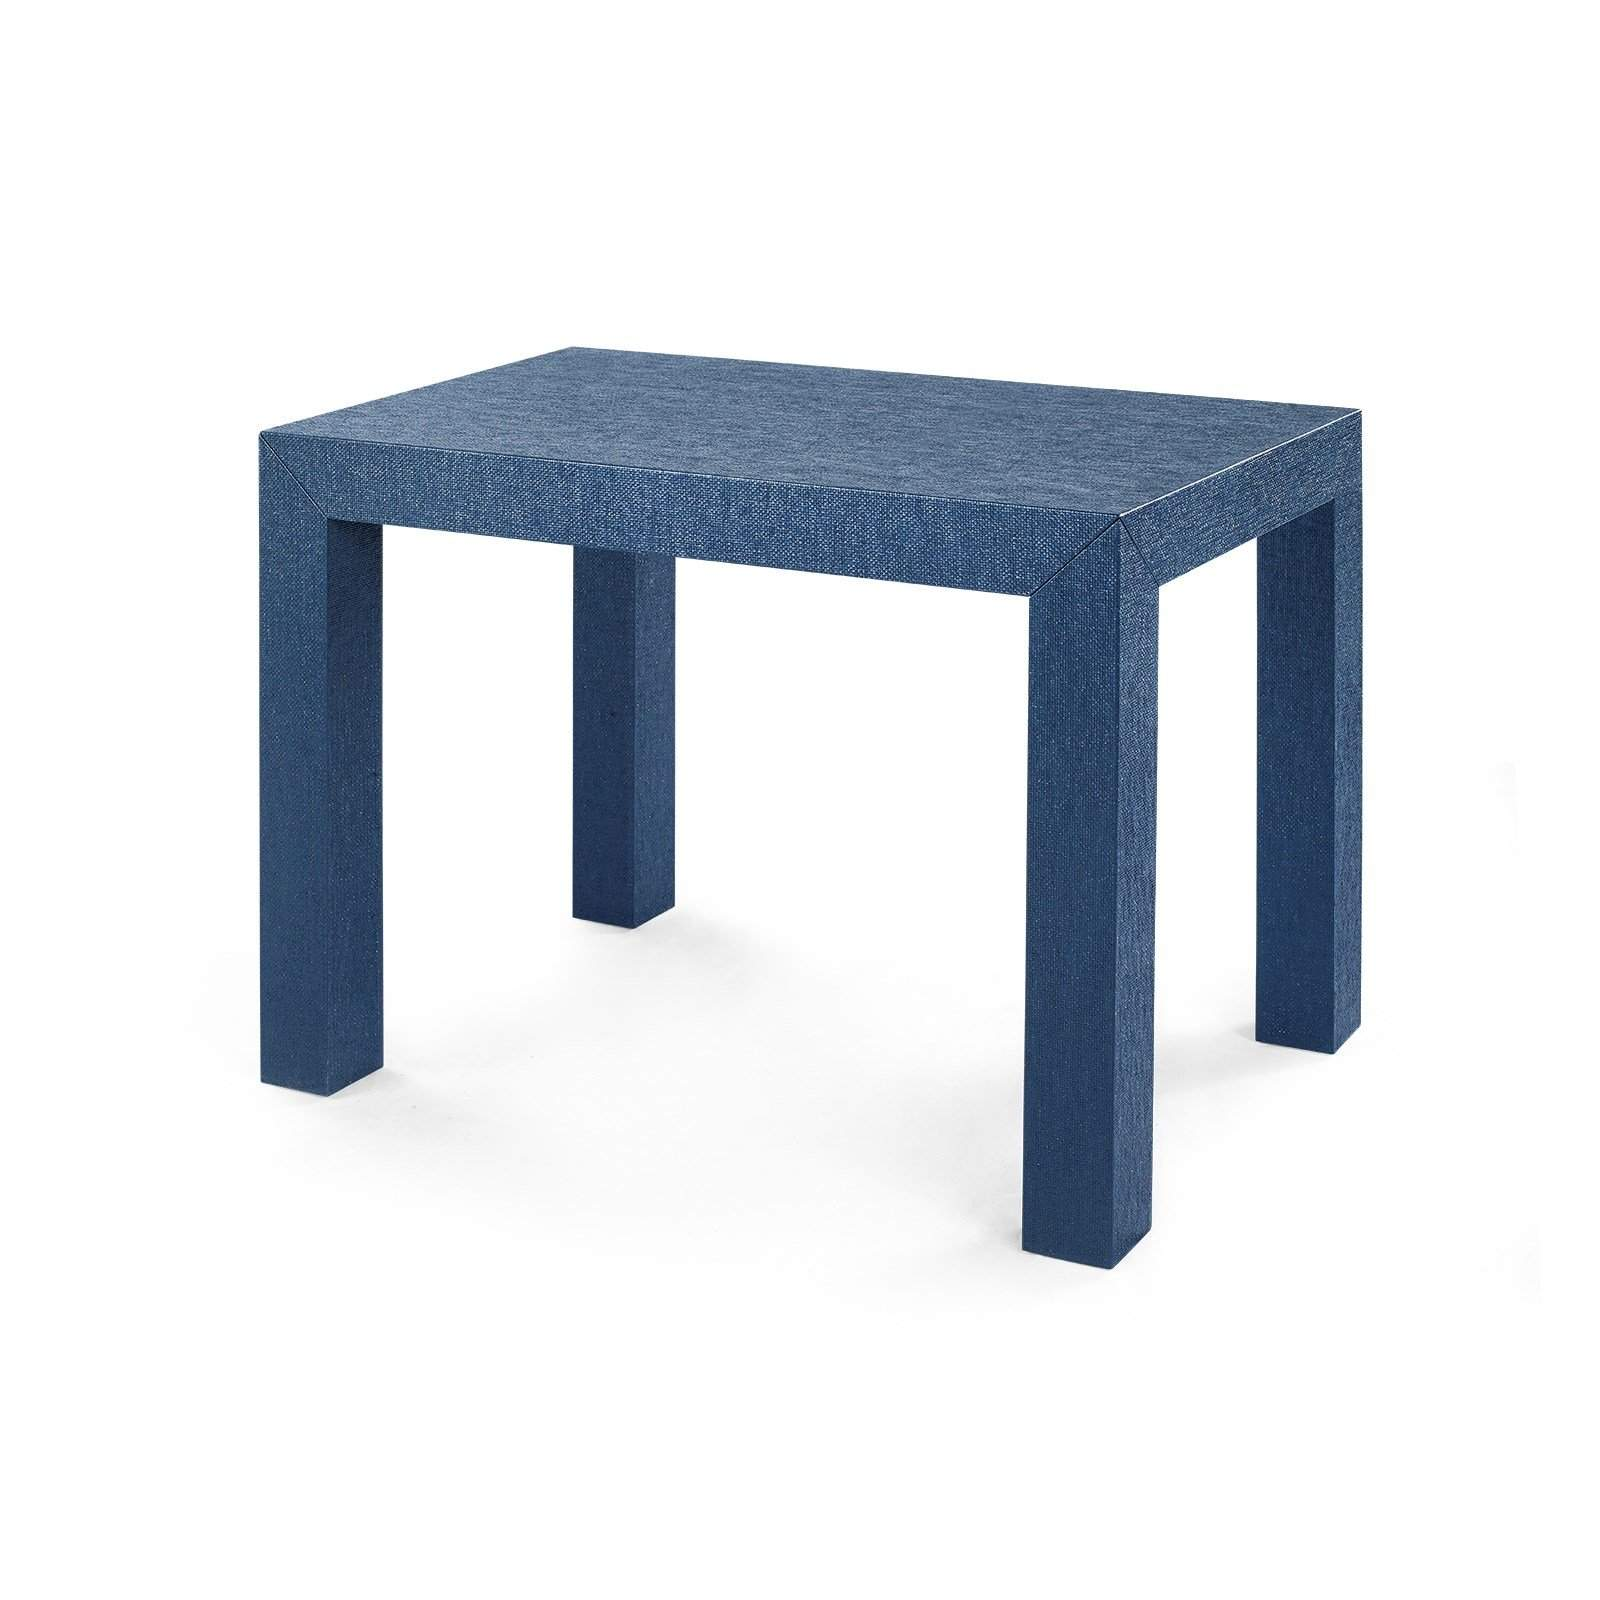 promo code 9a62a e1ae4 Bungalow 5 - PARSONS SIDE TABLE in NAVY BLUE